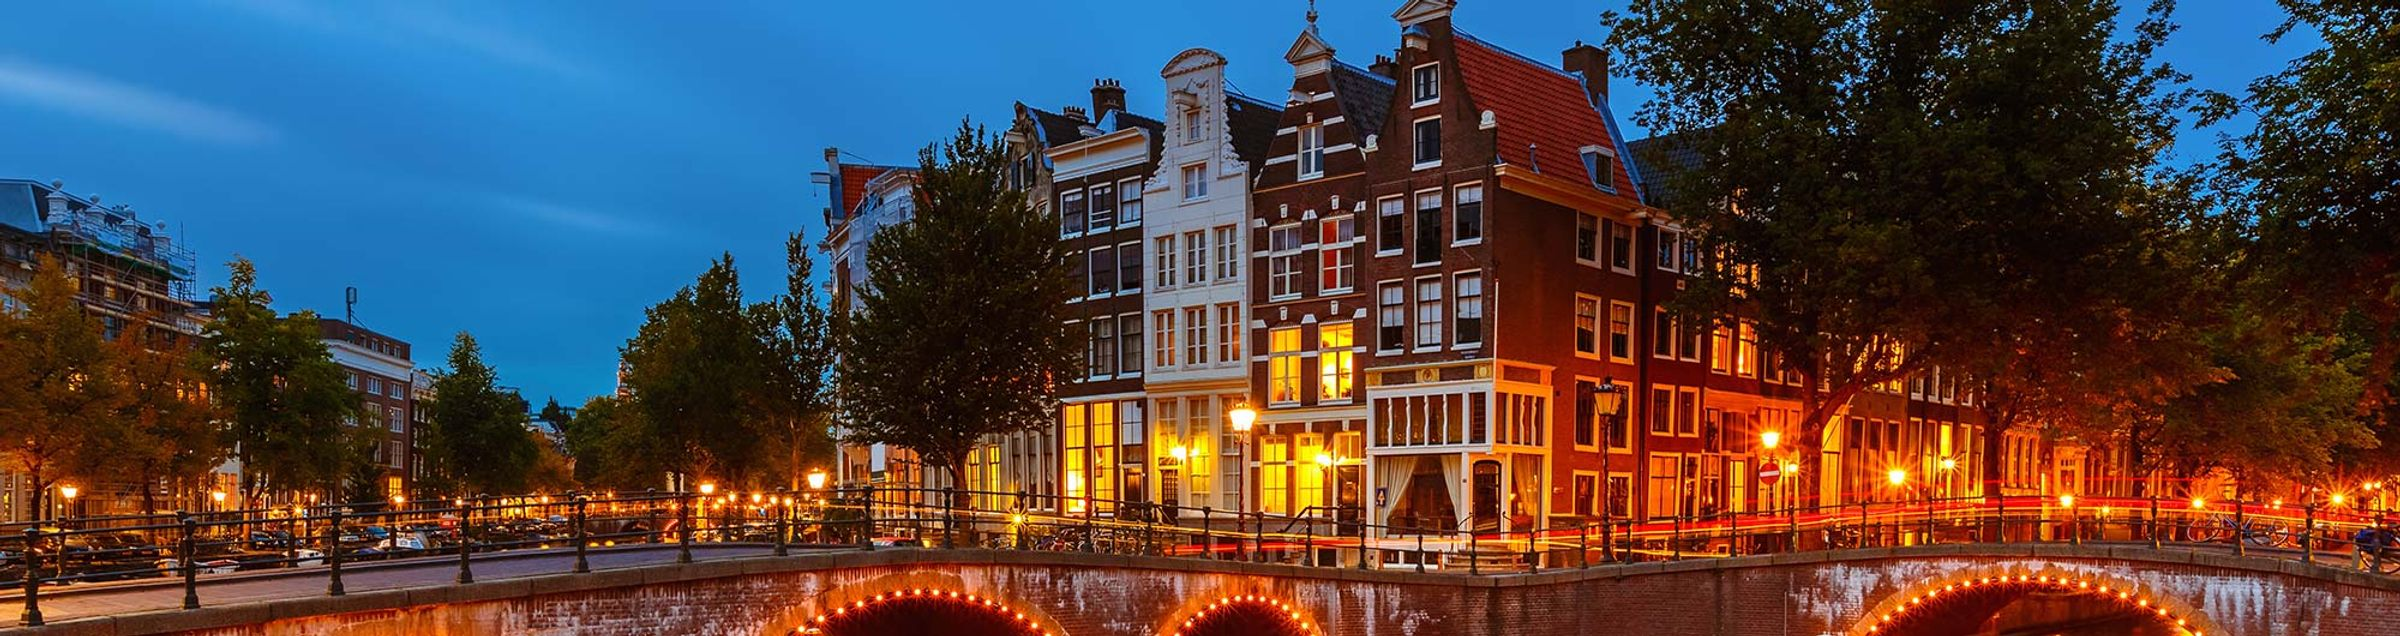 Hotels In Amsterdam Search And Compare Amsterdam Hotels